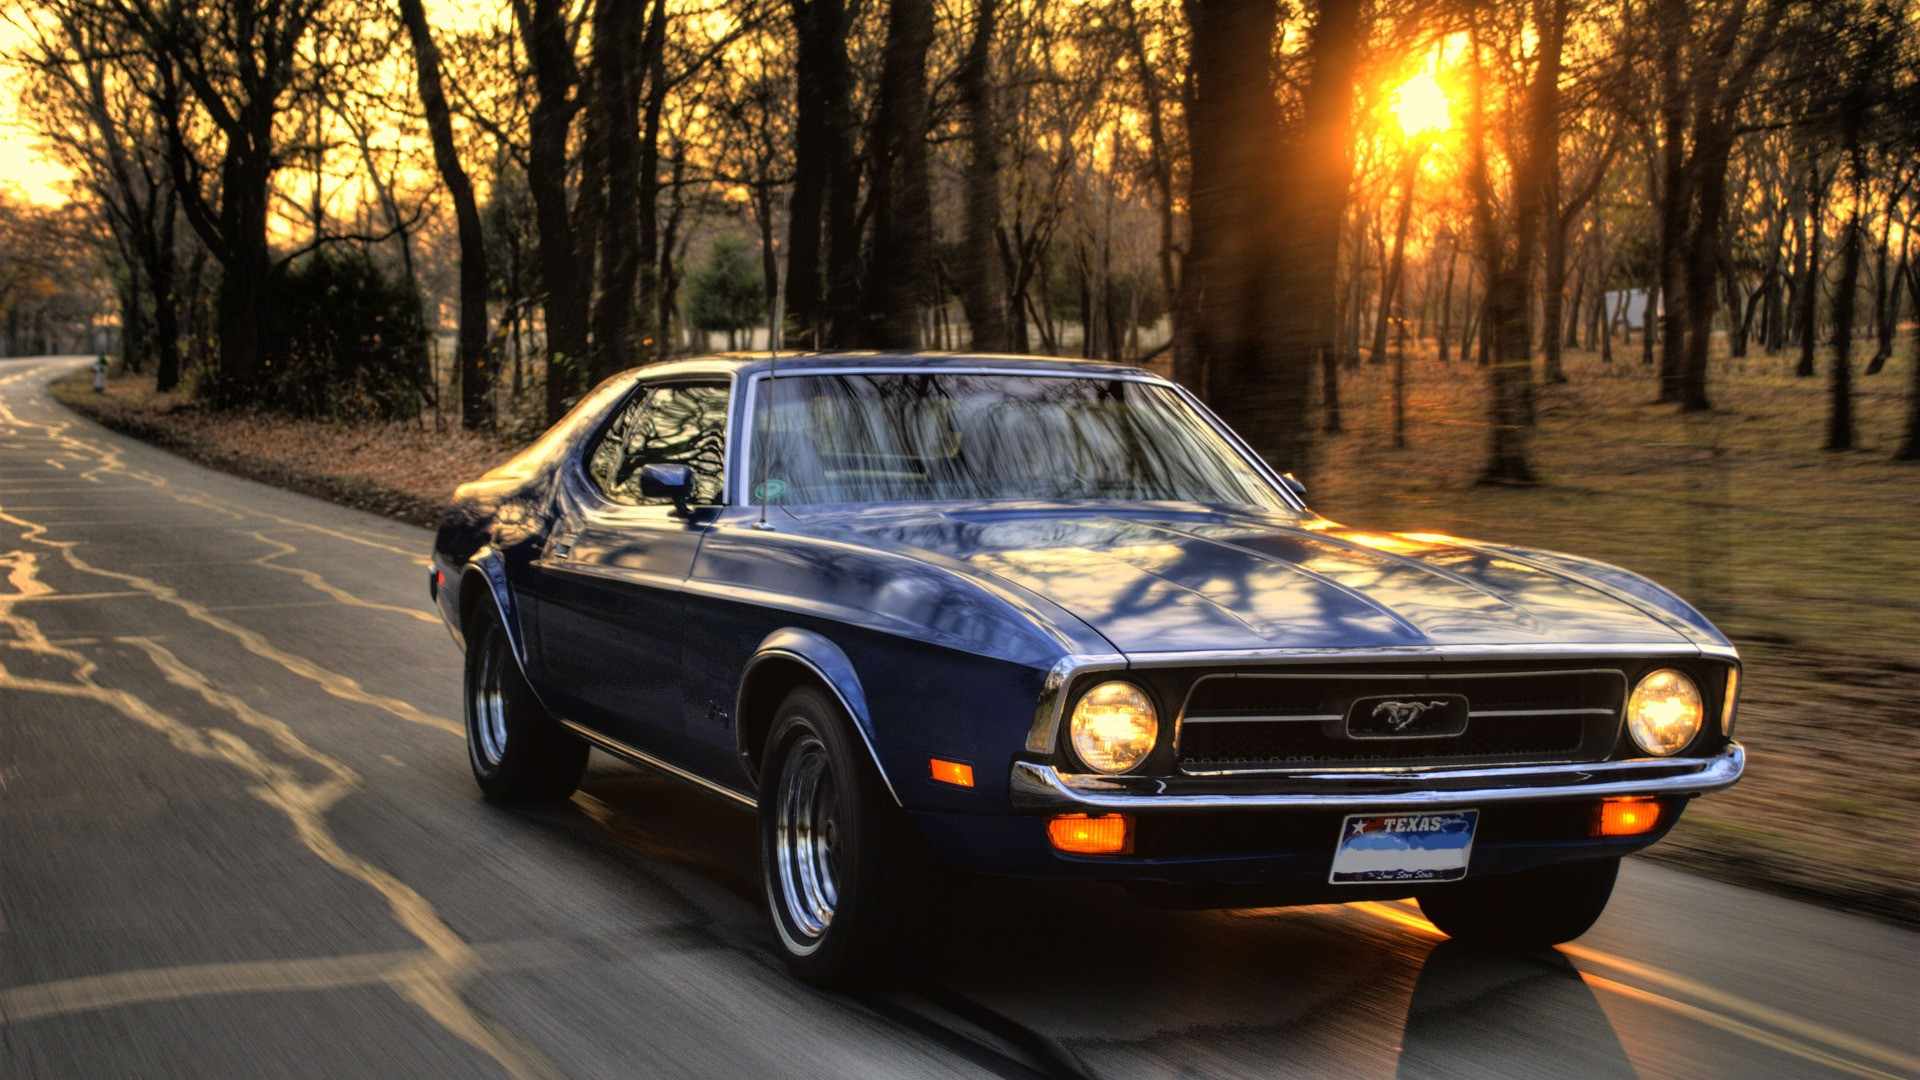 1970 Dodge Challenger Rt And Convertible Specs Colors as well 2018 Chevrolet Camaro Zl1 1le as well New Camaro Ss Gets Slammed Strikes A Pose moreover Cj So Cool w3oC 7CpgoMiXx4SNGkfsJk6rbZ68mtlLPVOPobPVB7uk furthermore 2013 Volvo Coupe Concept. on camaro muscle cars wallpaper